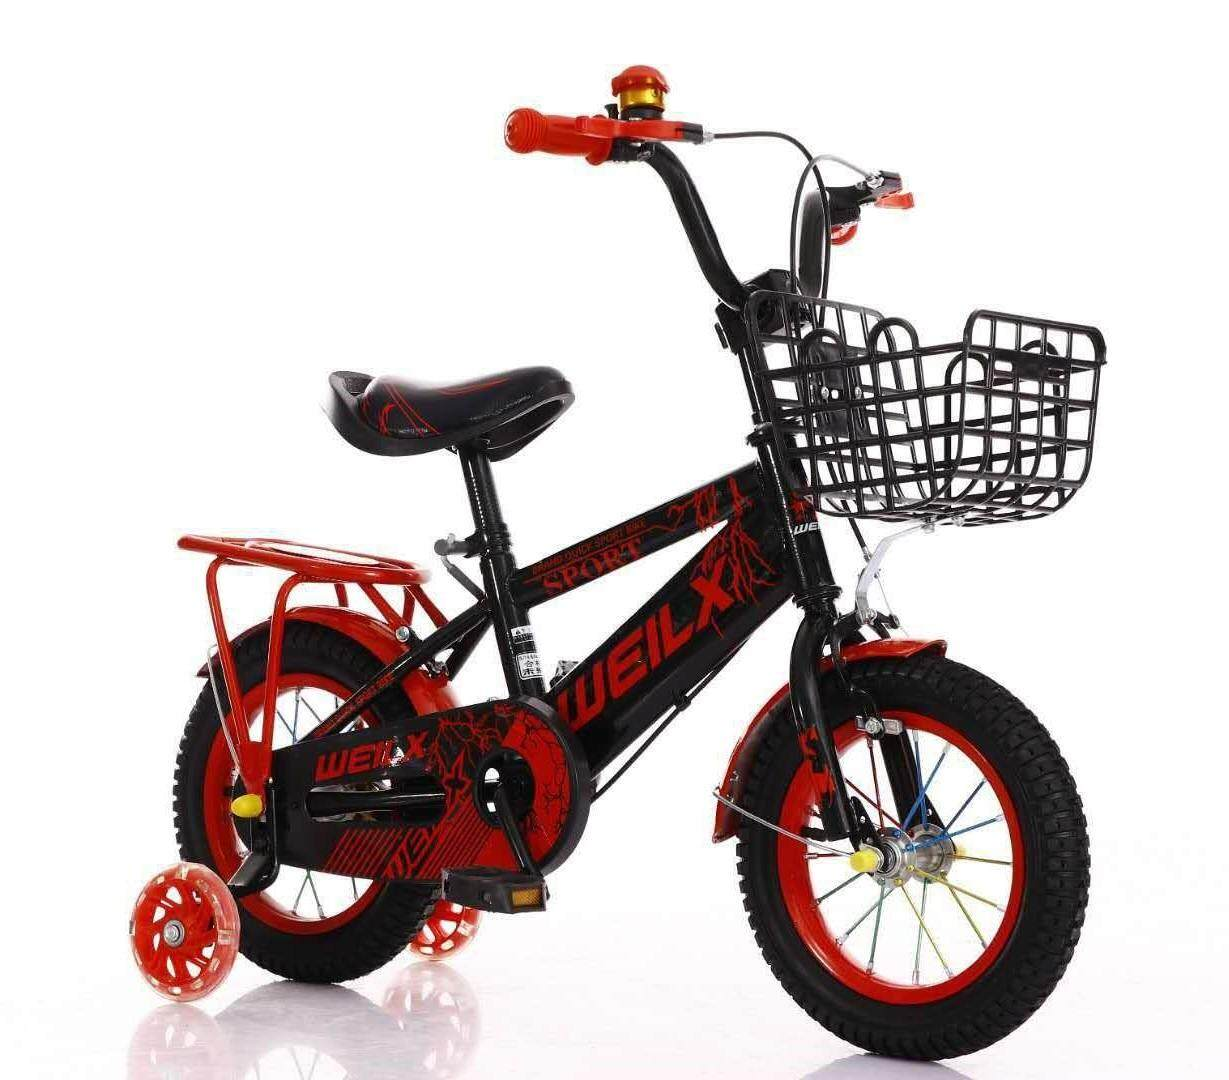 16 Inch Kids Bicycle By Power Rider.